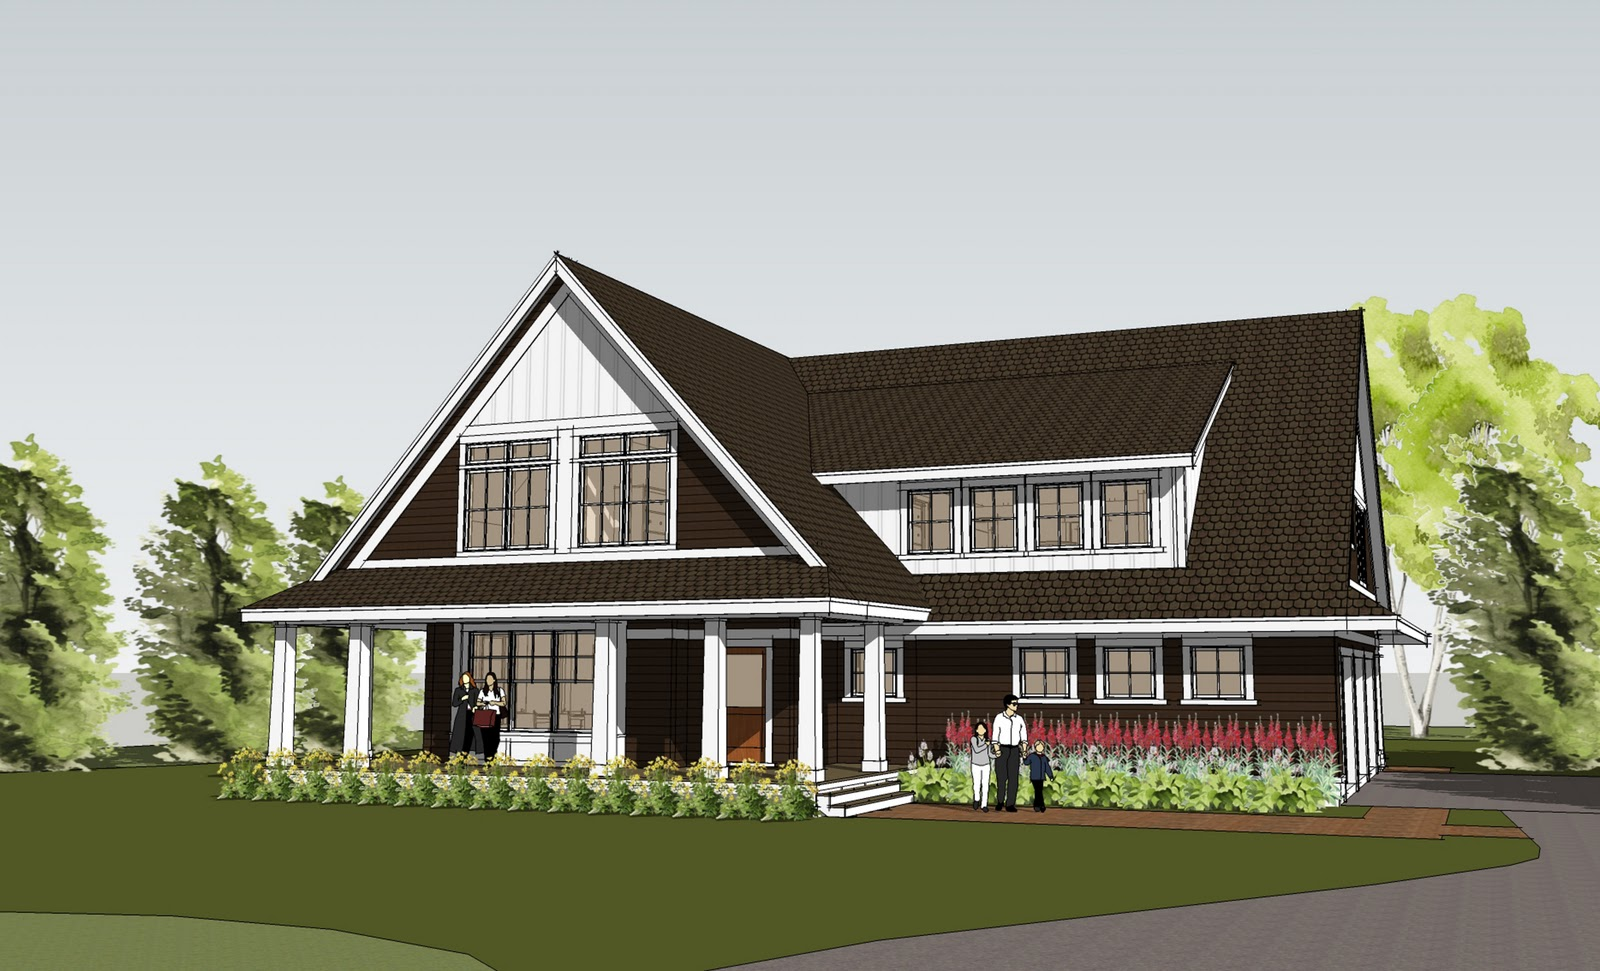 Simply elegant home designs blog new simple yet dramatic for Elegant farmhouse plans